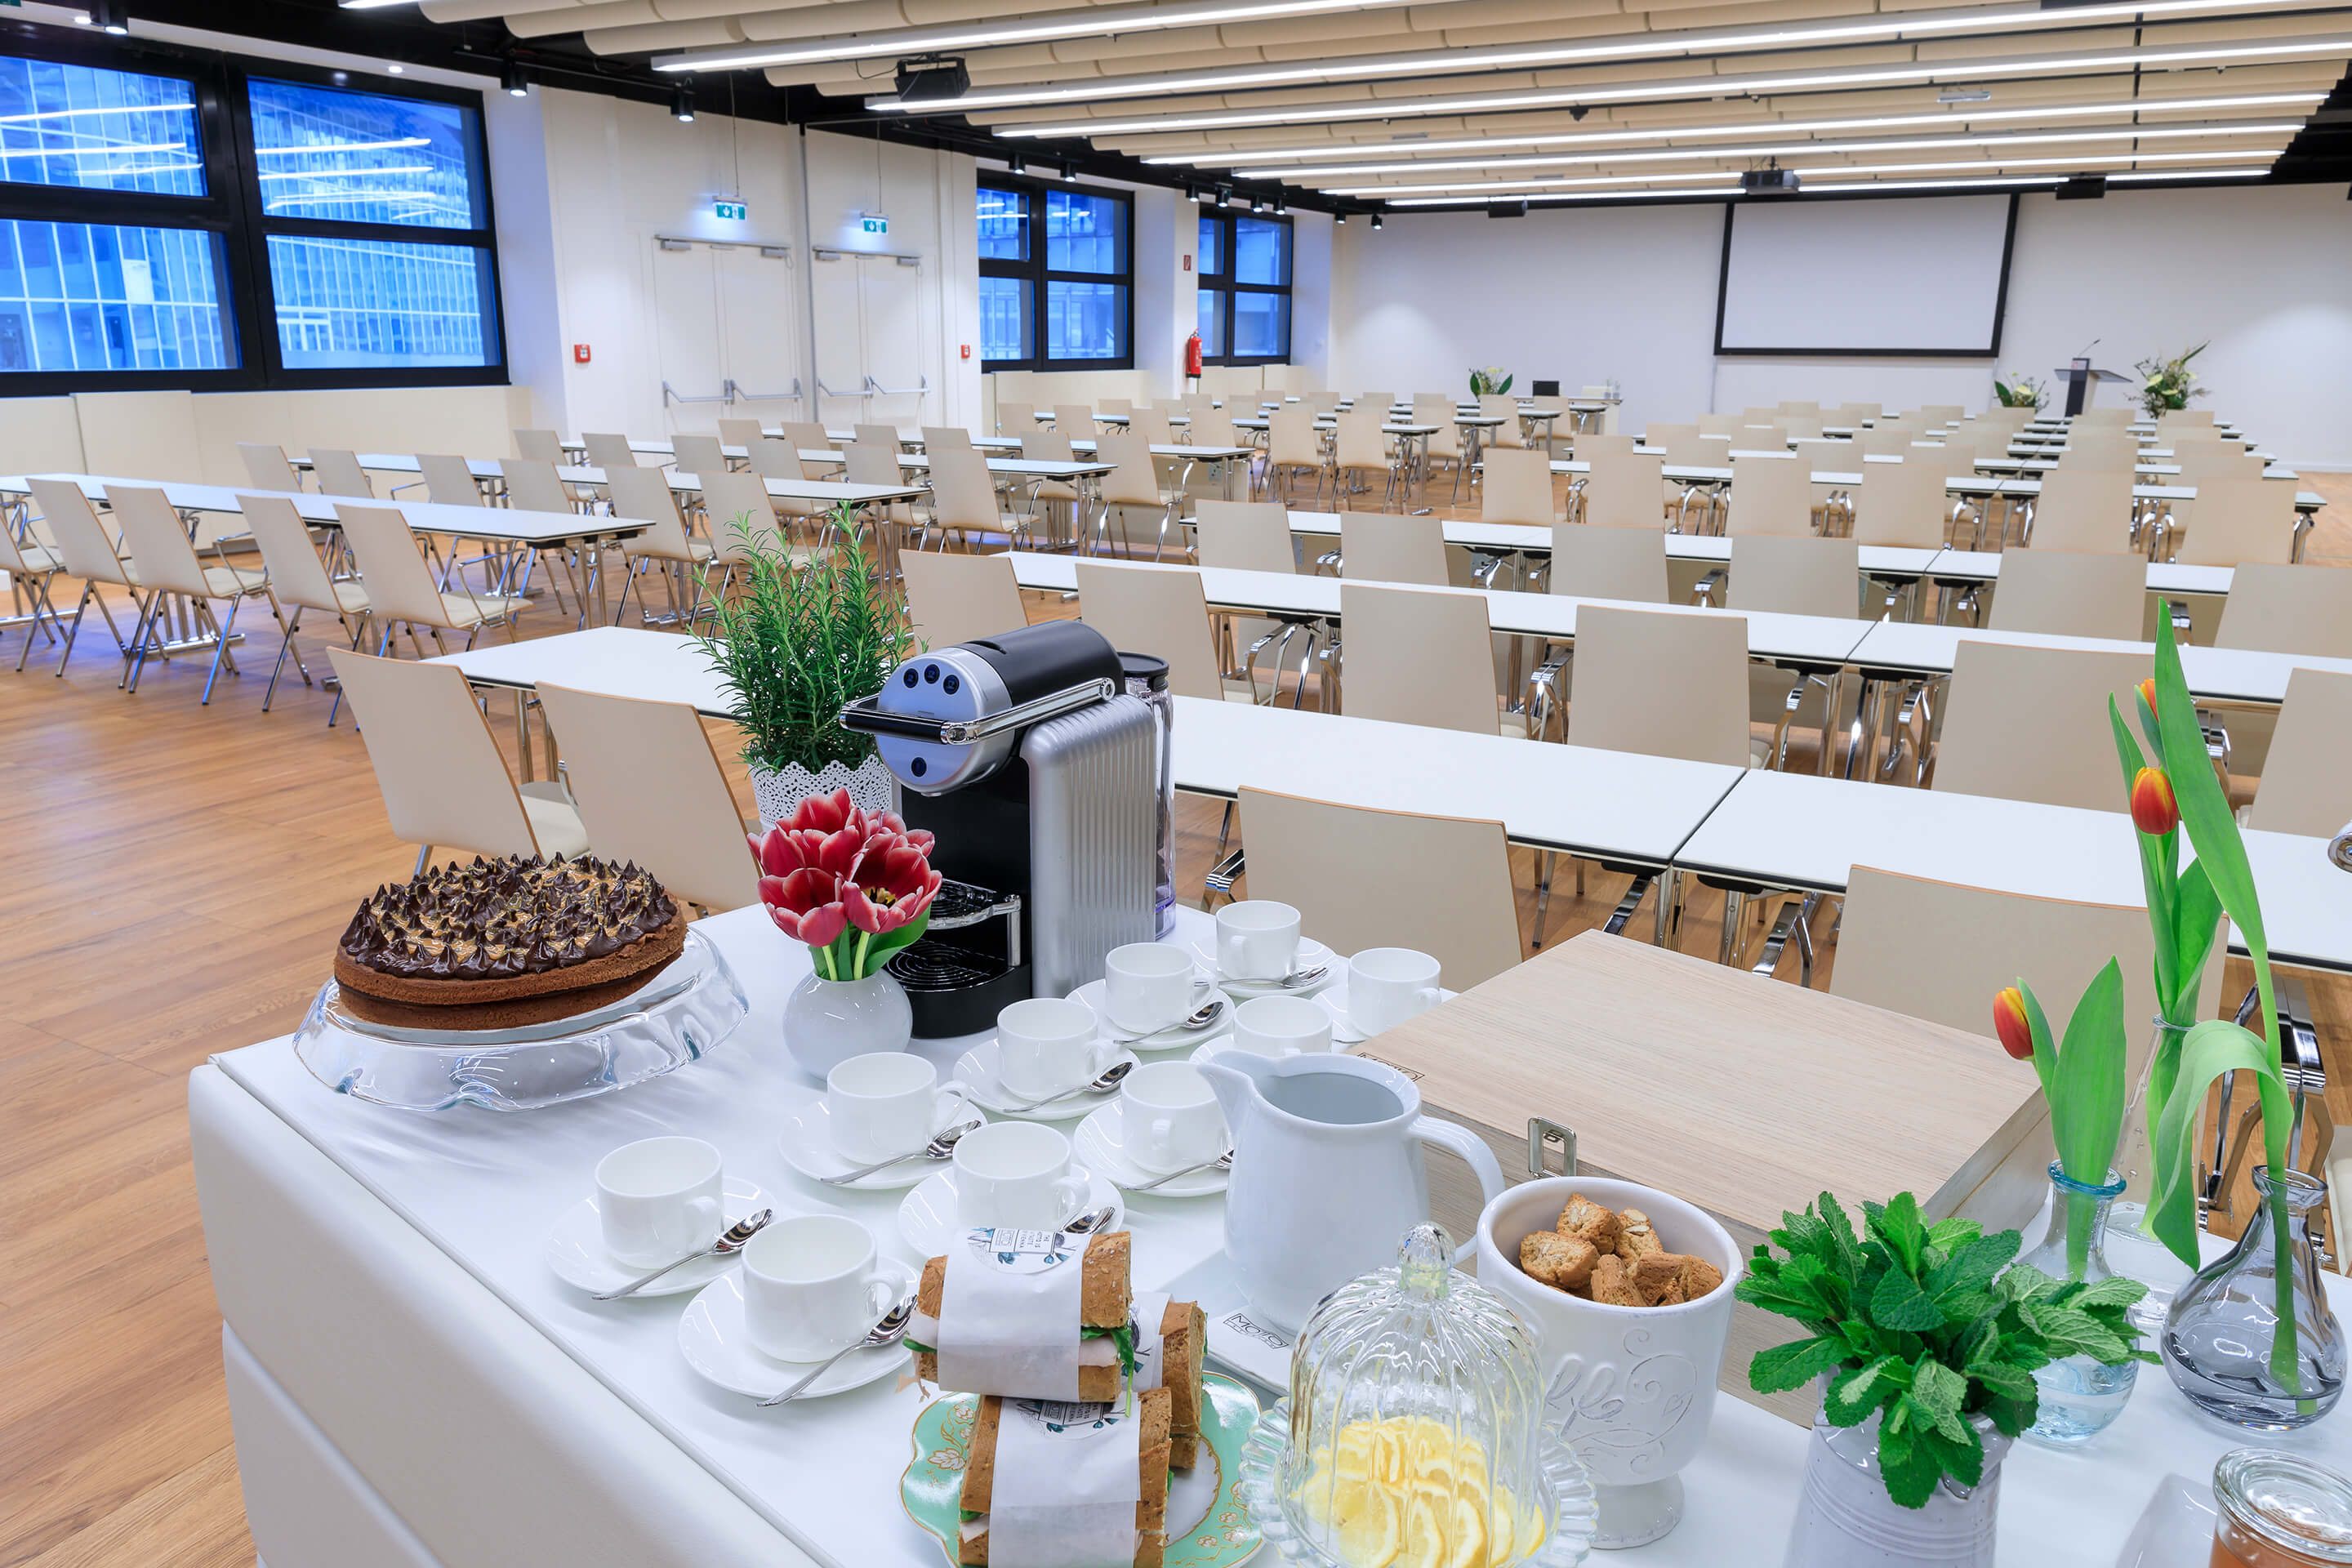 Foto: Haus Level 1 Saal N Setting Tagung mit Motto Catering